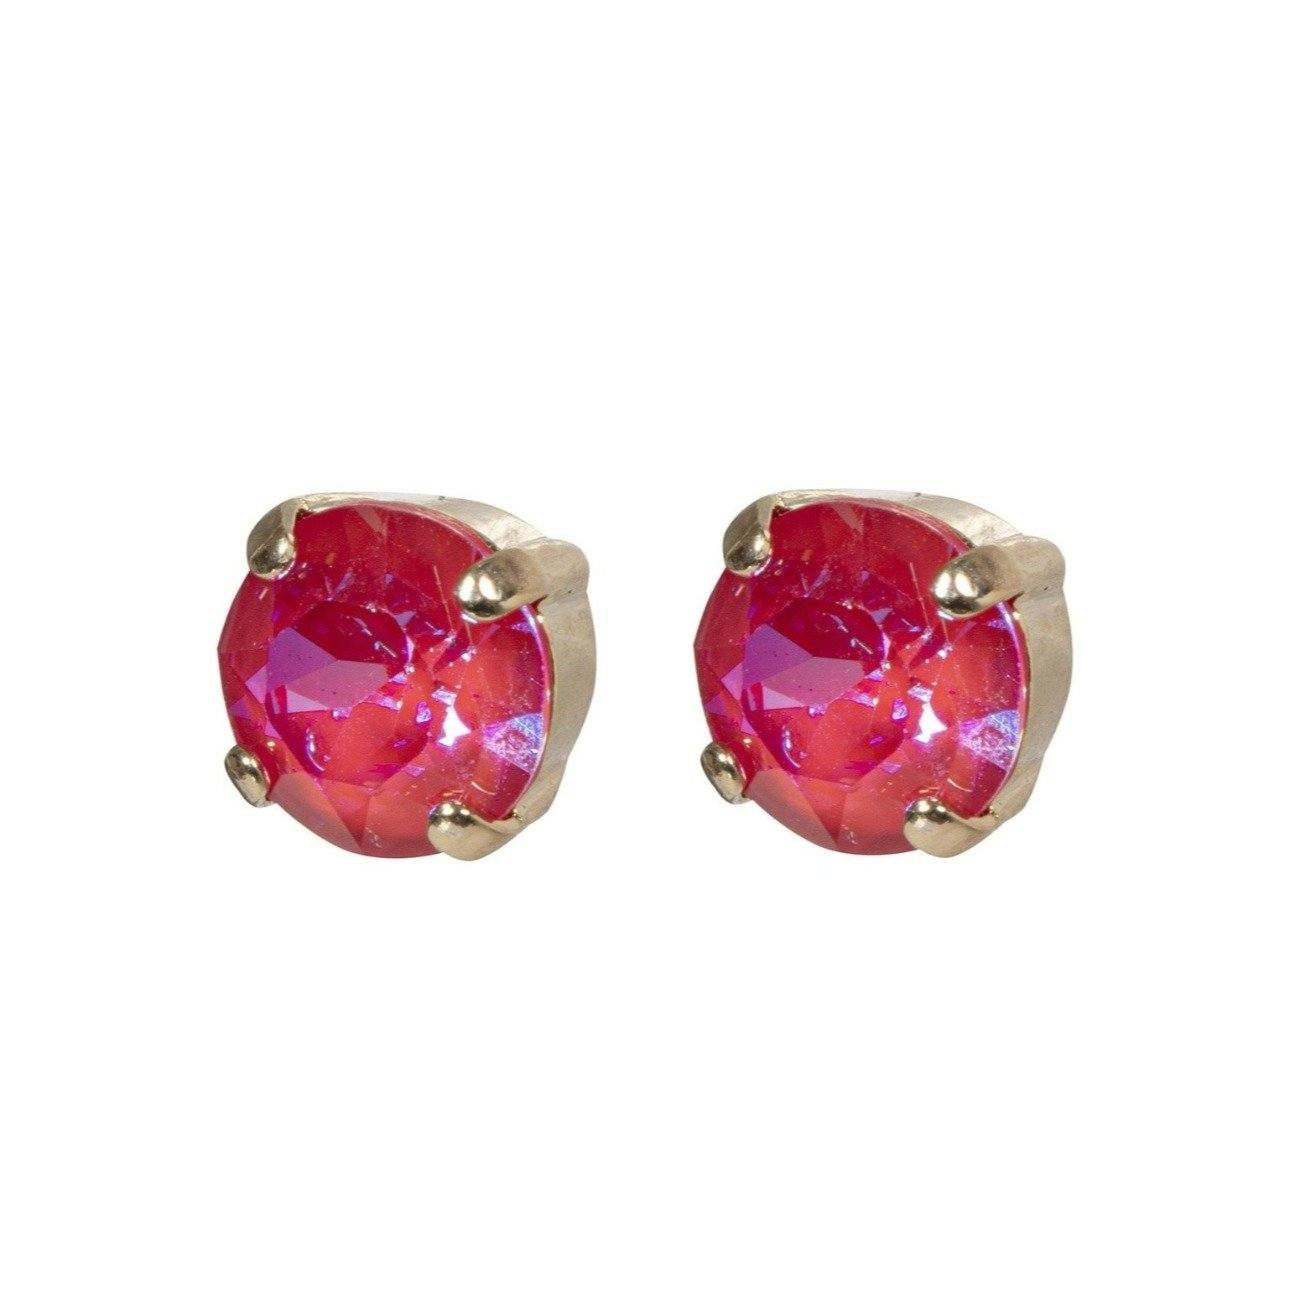 Splash Earrings - Candy